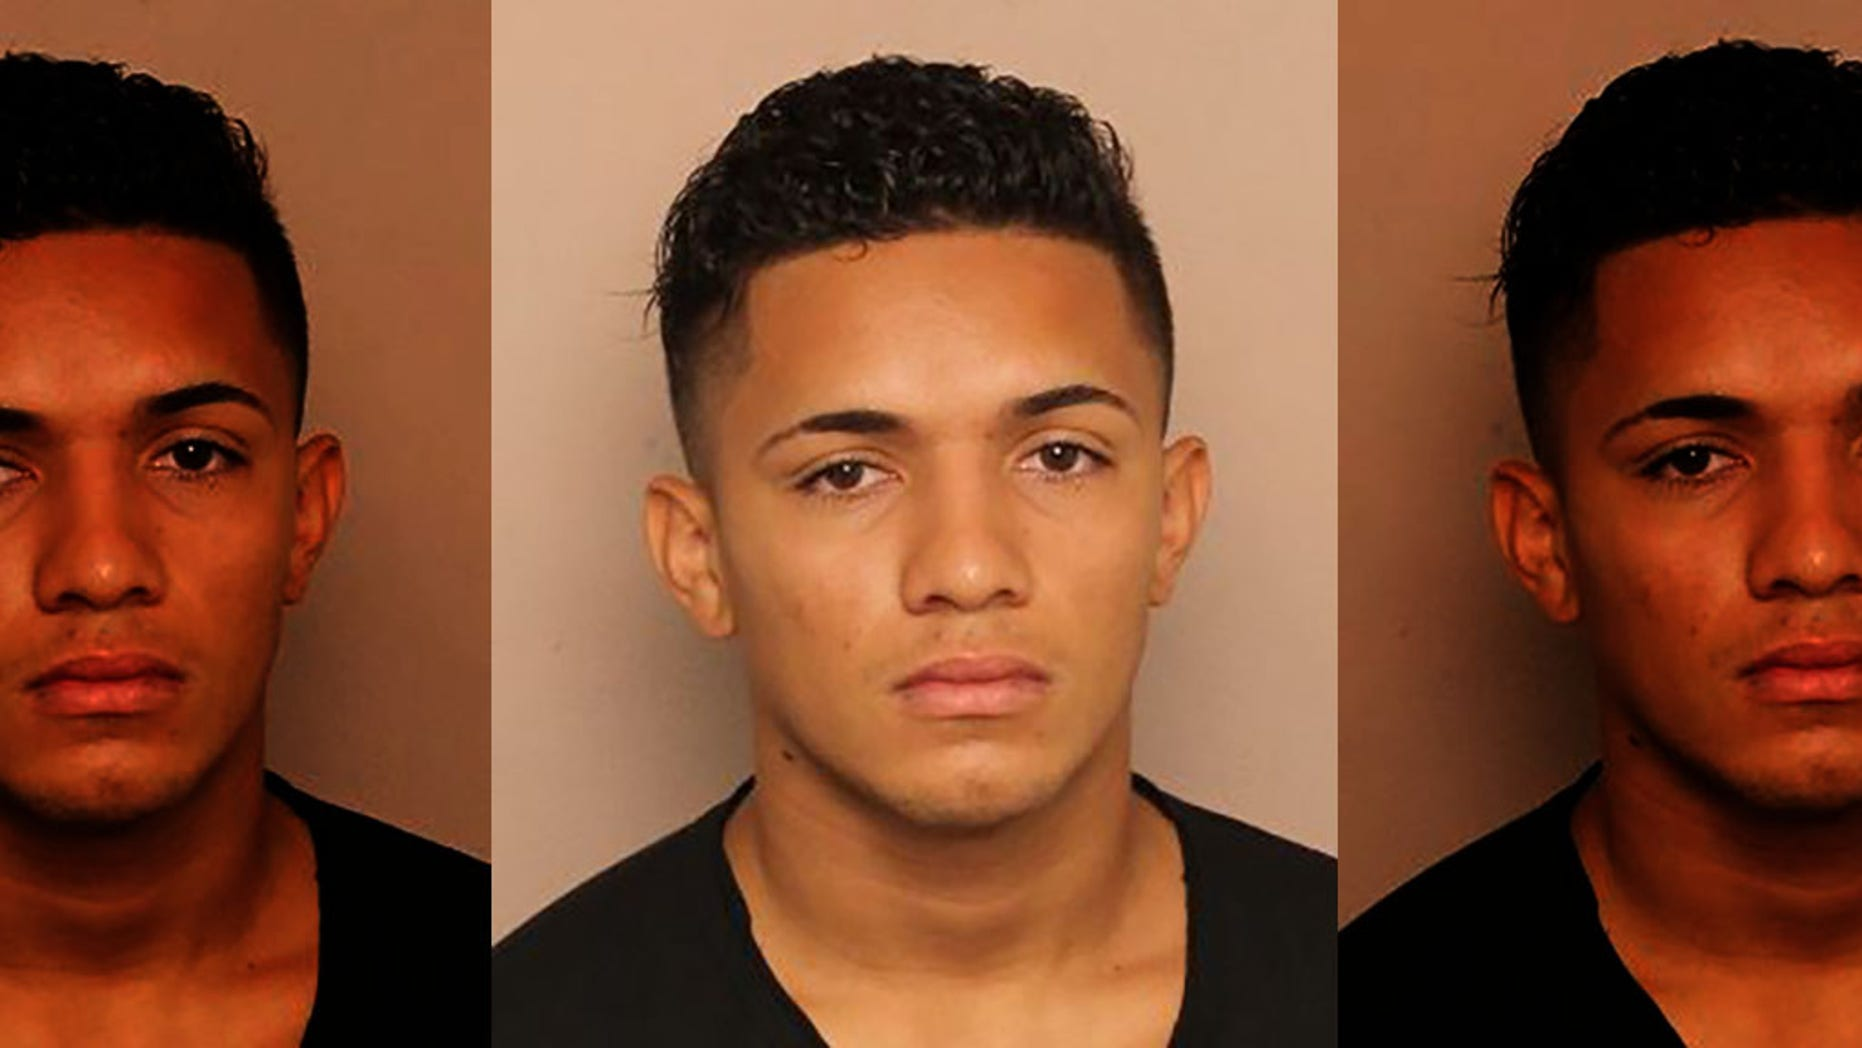 Police say Jordan Ponce was involved in Monday night's attempted robbery.